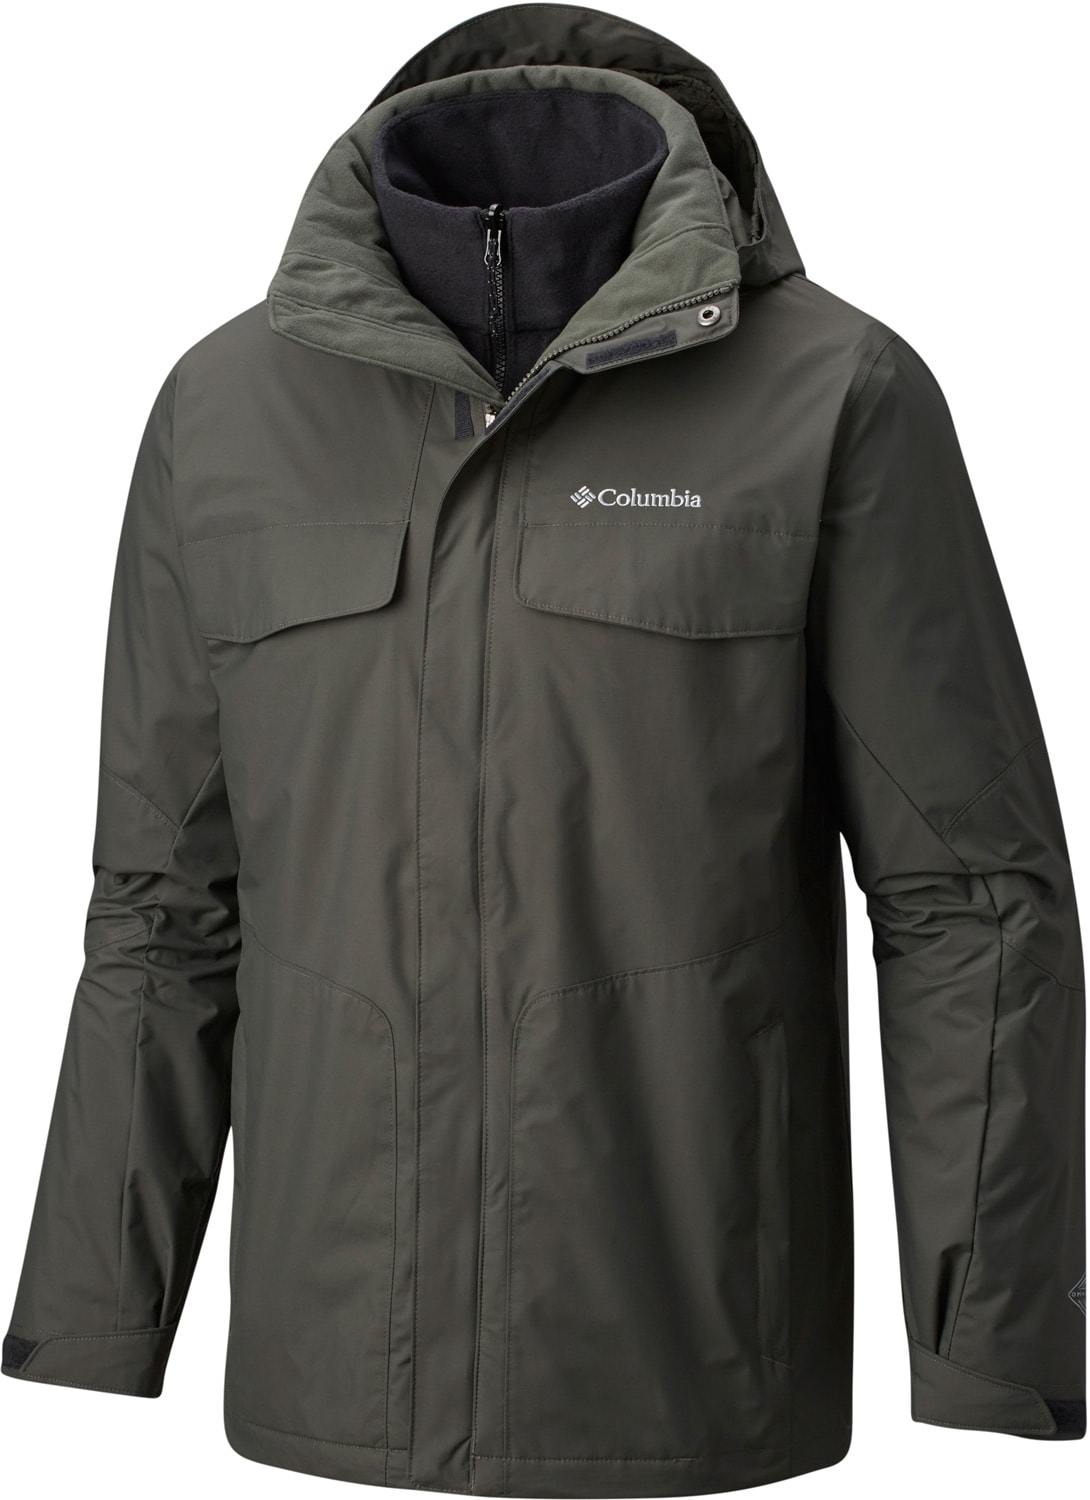 Columbia Waterproof Jacket Womens